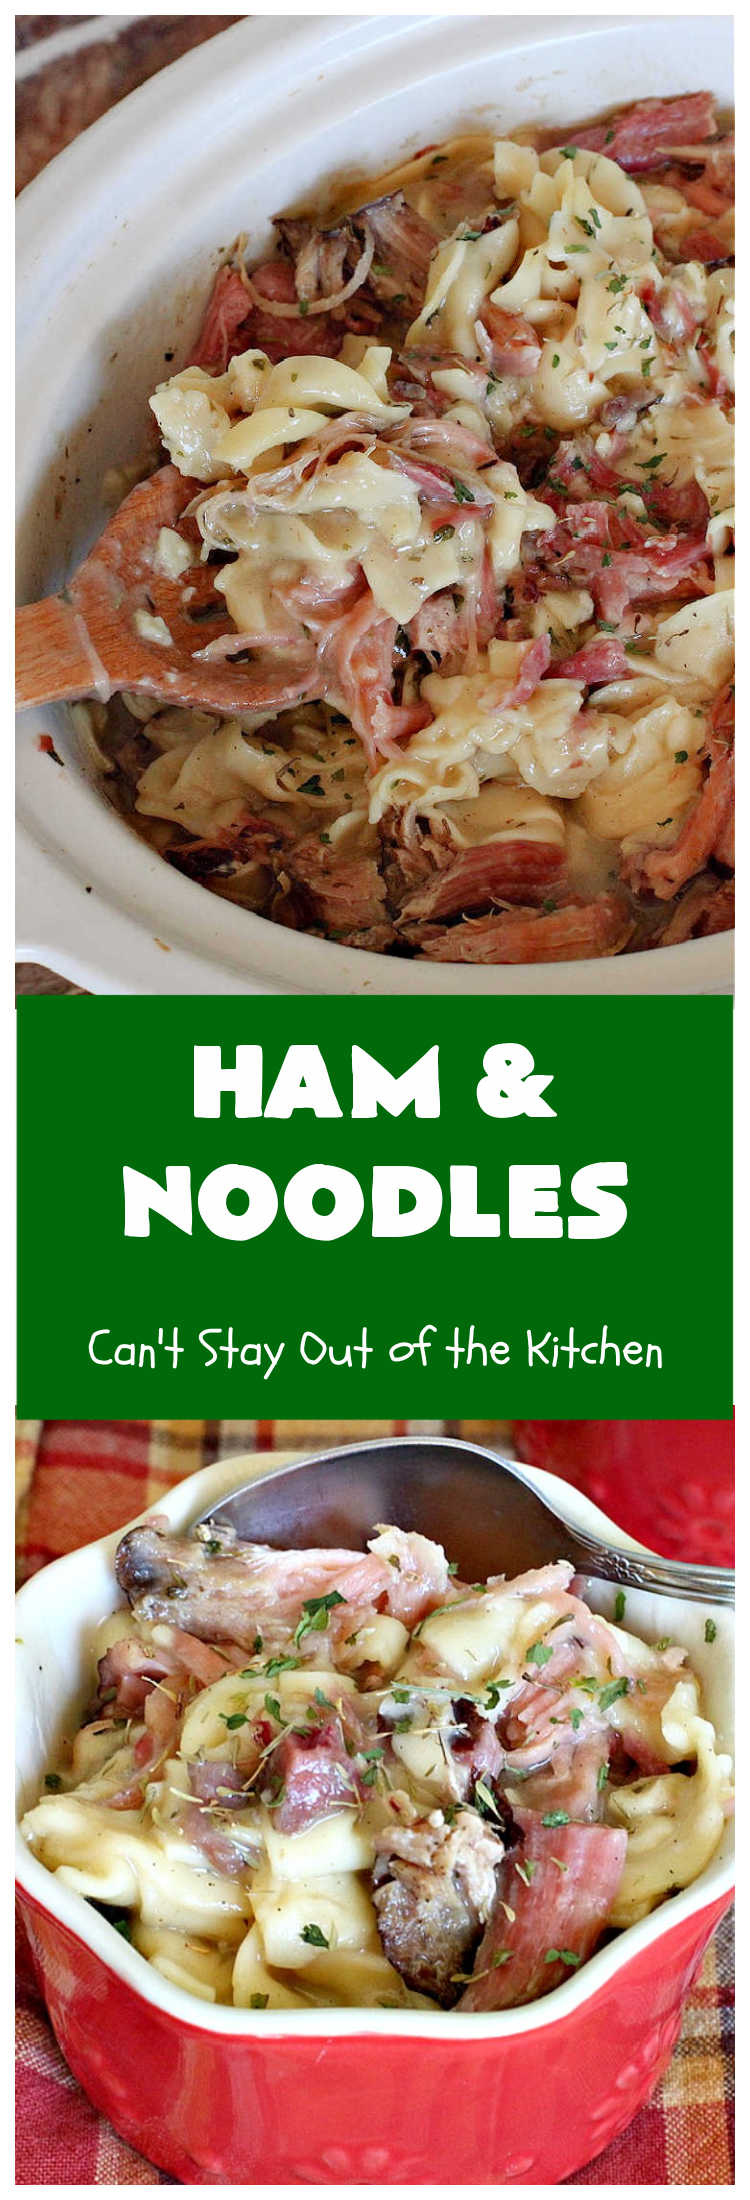 Ham and Noodles | Can't Stay Out of the Kitchen | this mouthwatering #recipe is a terrific way to use up leftover #holiday #ham. It's made in the #SlowCooker & so easy. Savory, sumptuous stick-to-the-ribs meal. #noodles #pasta #HamAndNoodles